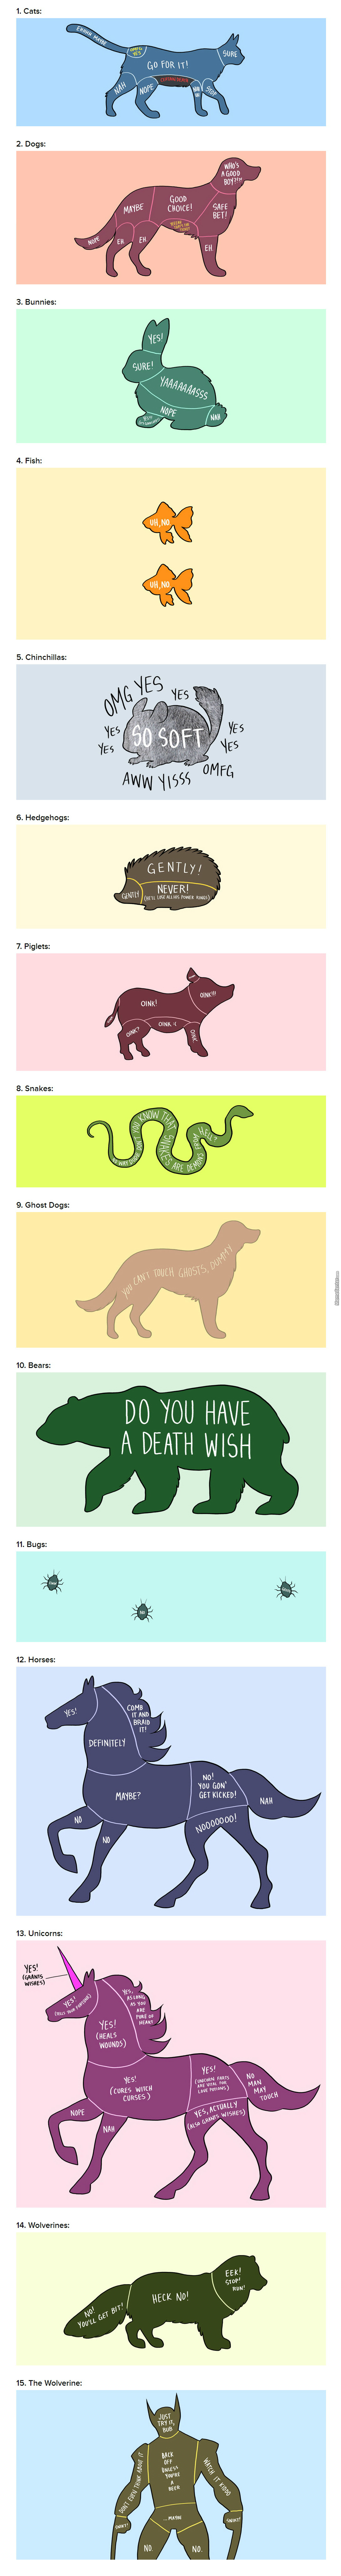 15 Charts That Perfectly Illustrate How To Properly Pet Animals